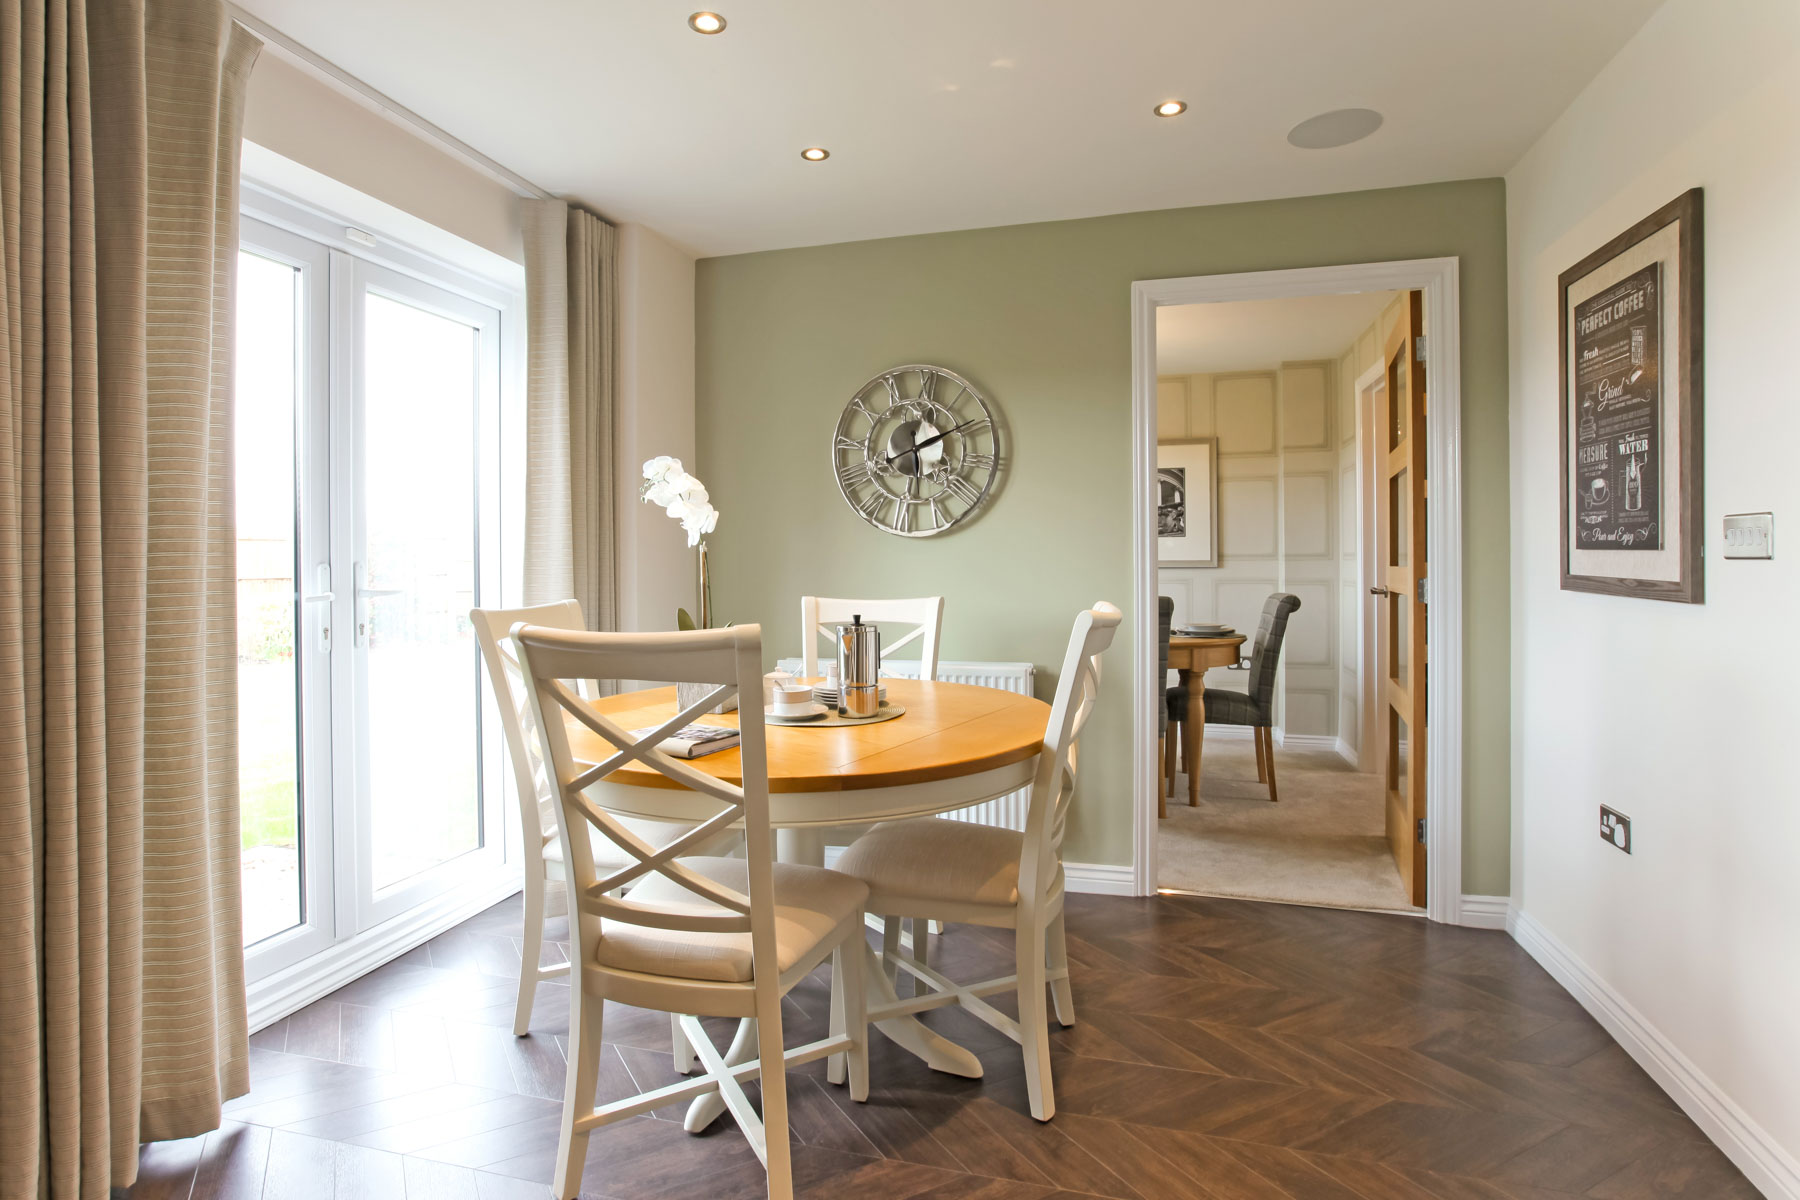 011_PW_Eynsham_Dining_Area